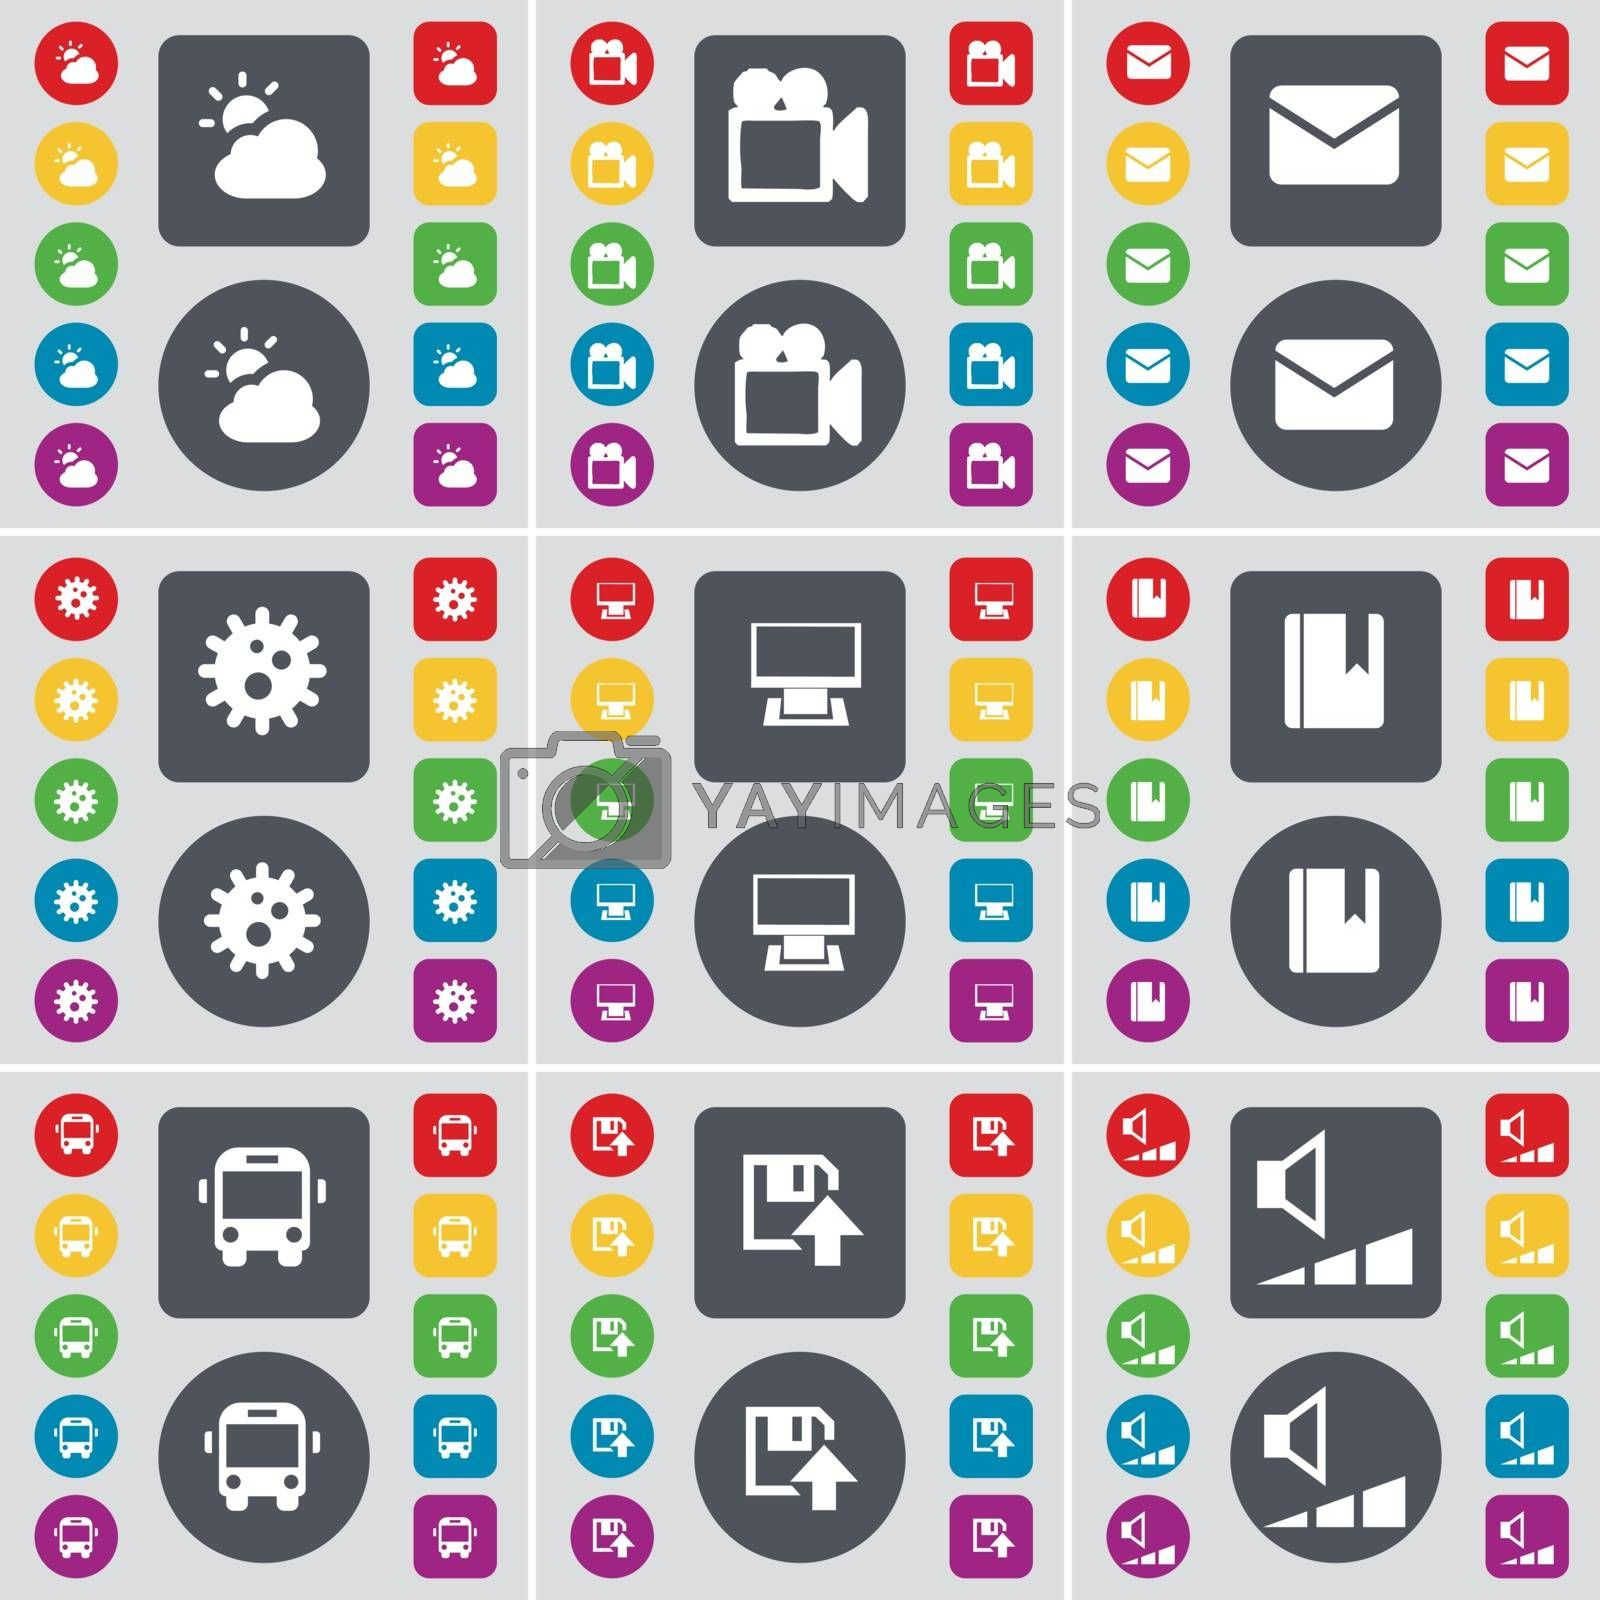 Royalty free image of Cloud, Film camera, Message, Gear, Monitor, Dictionary, Bus, Floppy, Video icon symbol. A large set of flat, colored buttons for your design. Vector by serhii_lohvyniuk